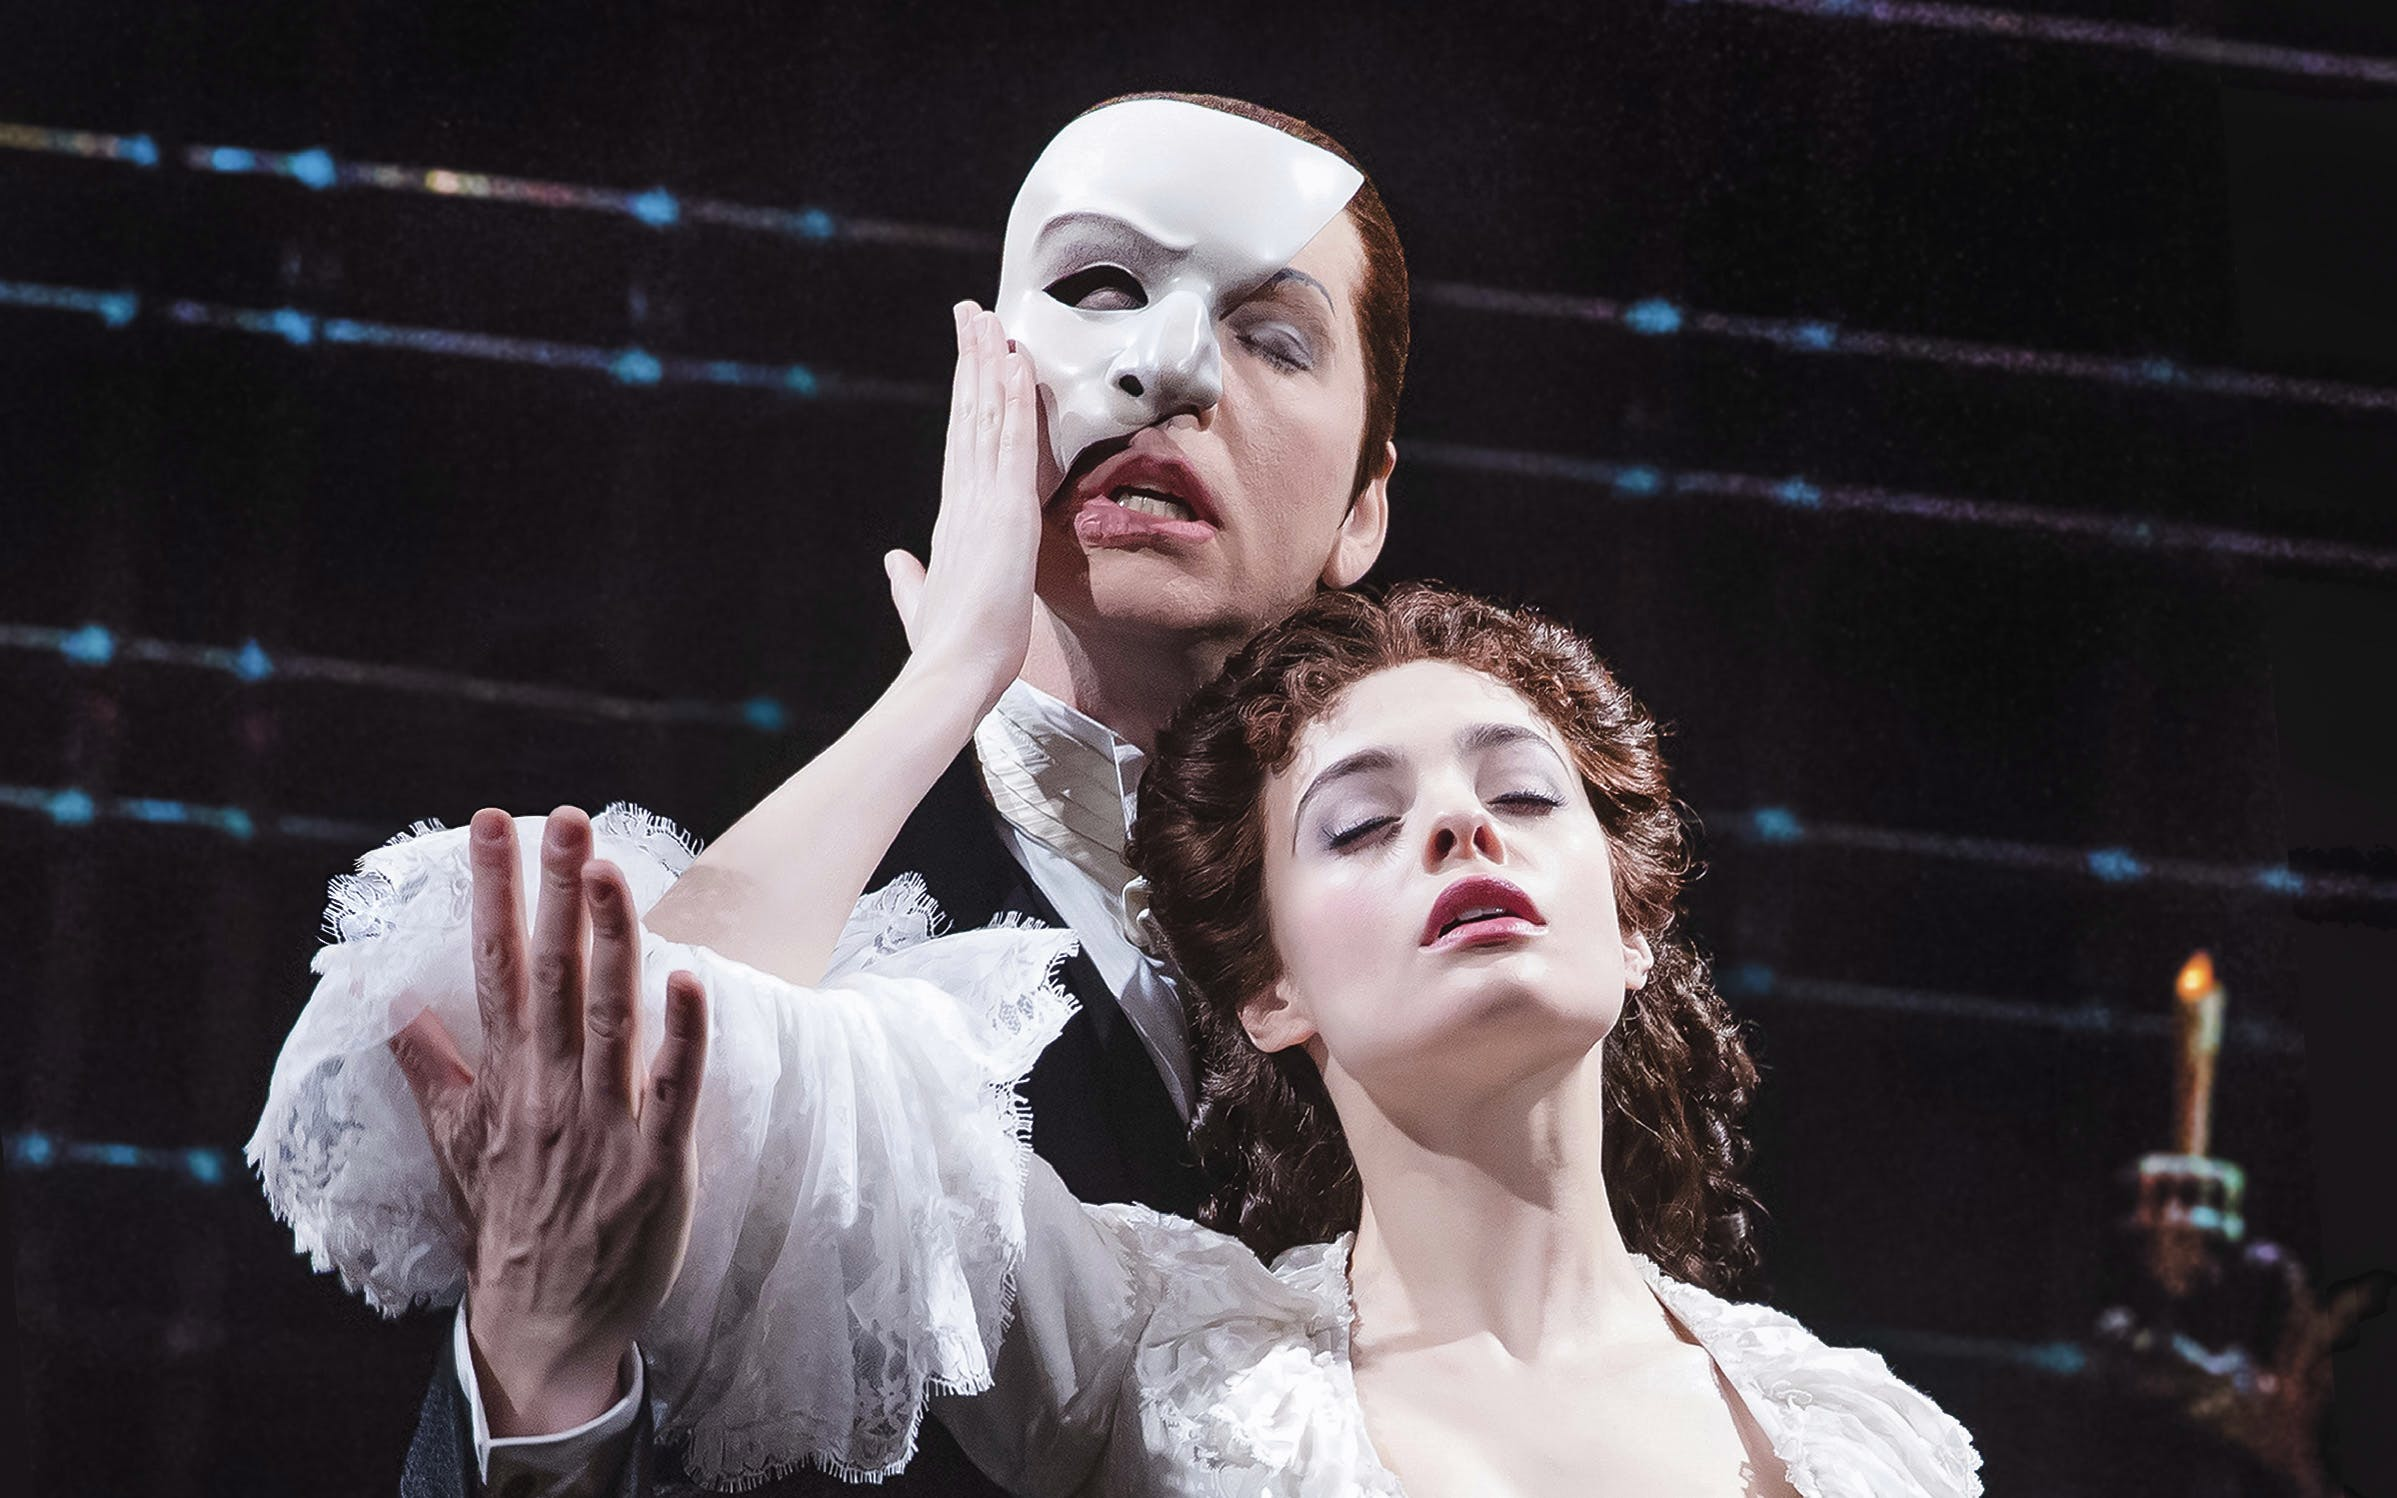 Planning a trip to NYC - The Phantom of the Opera